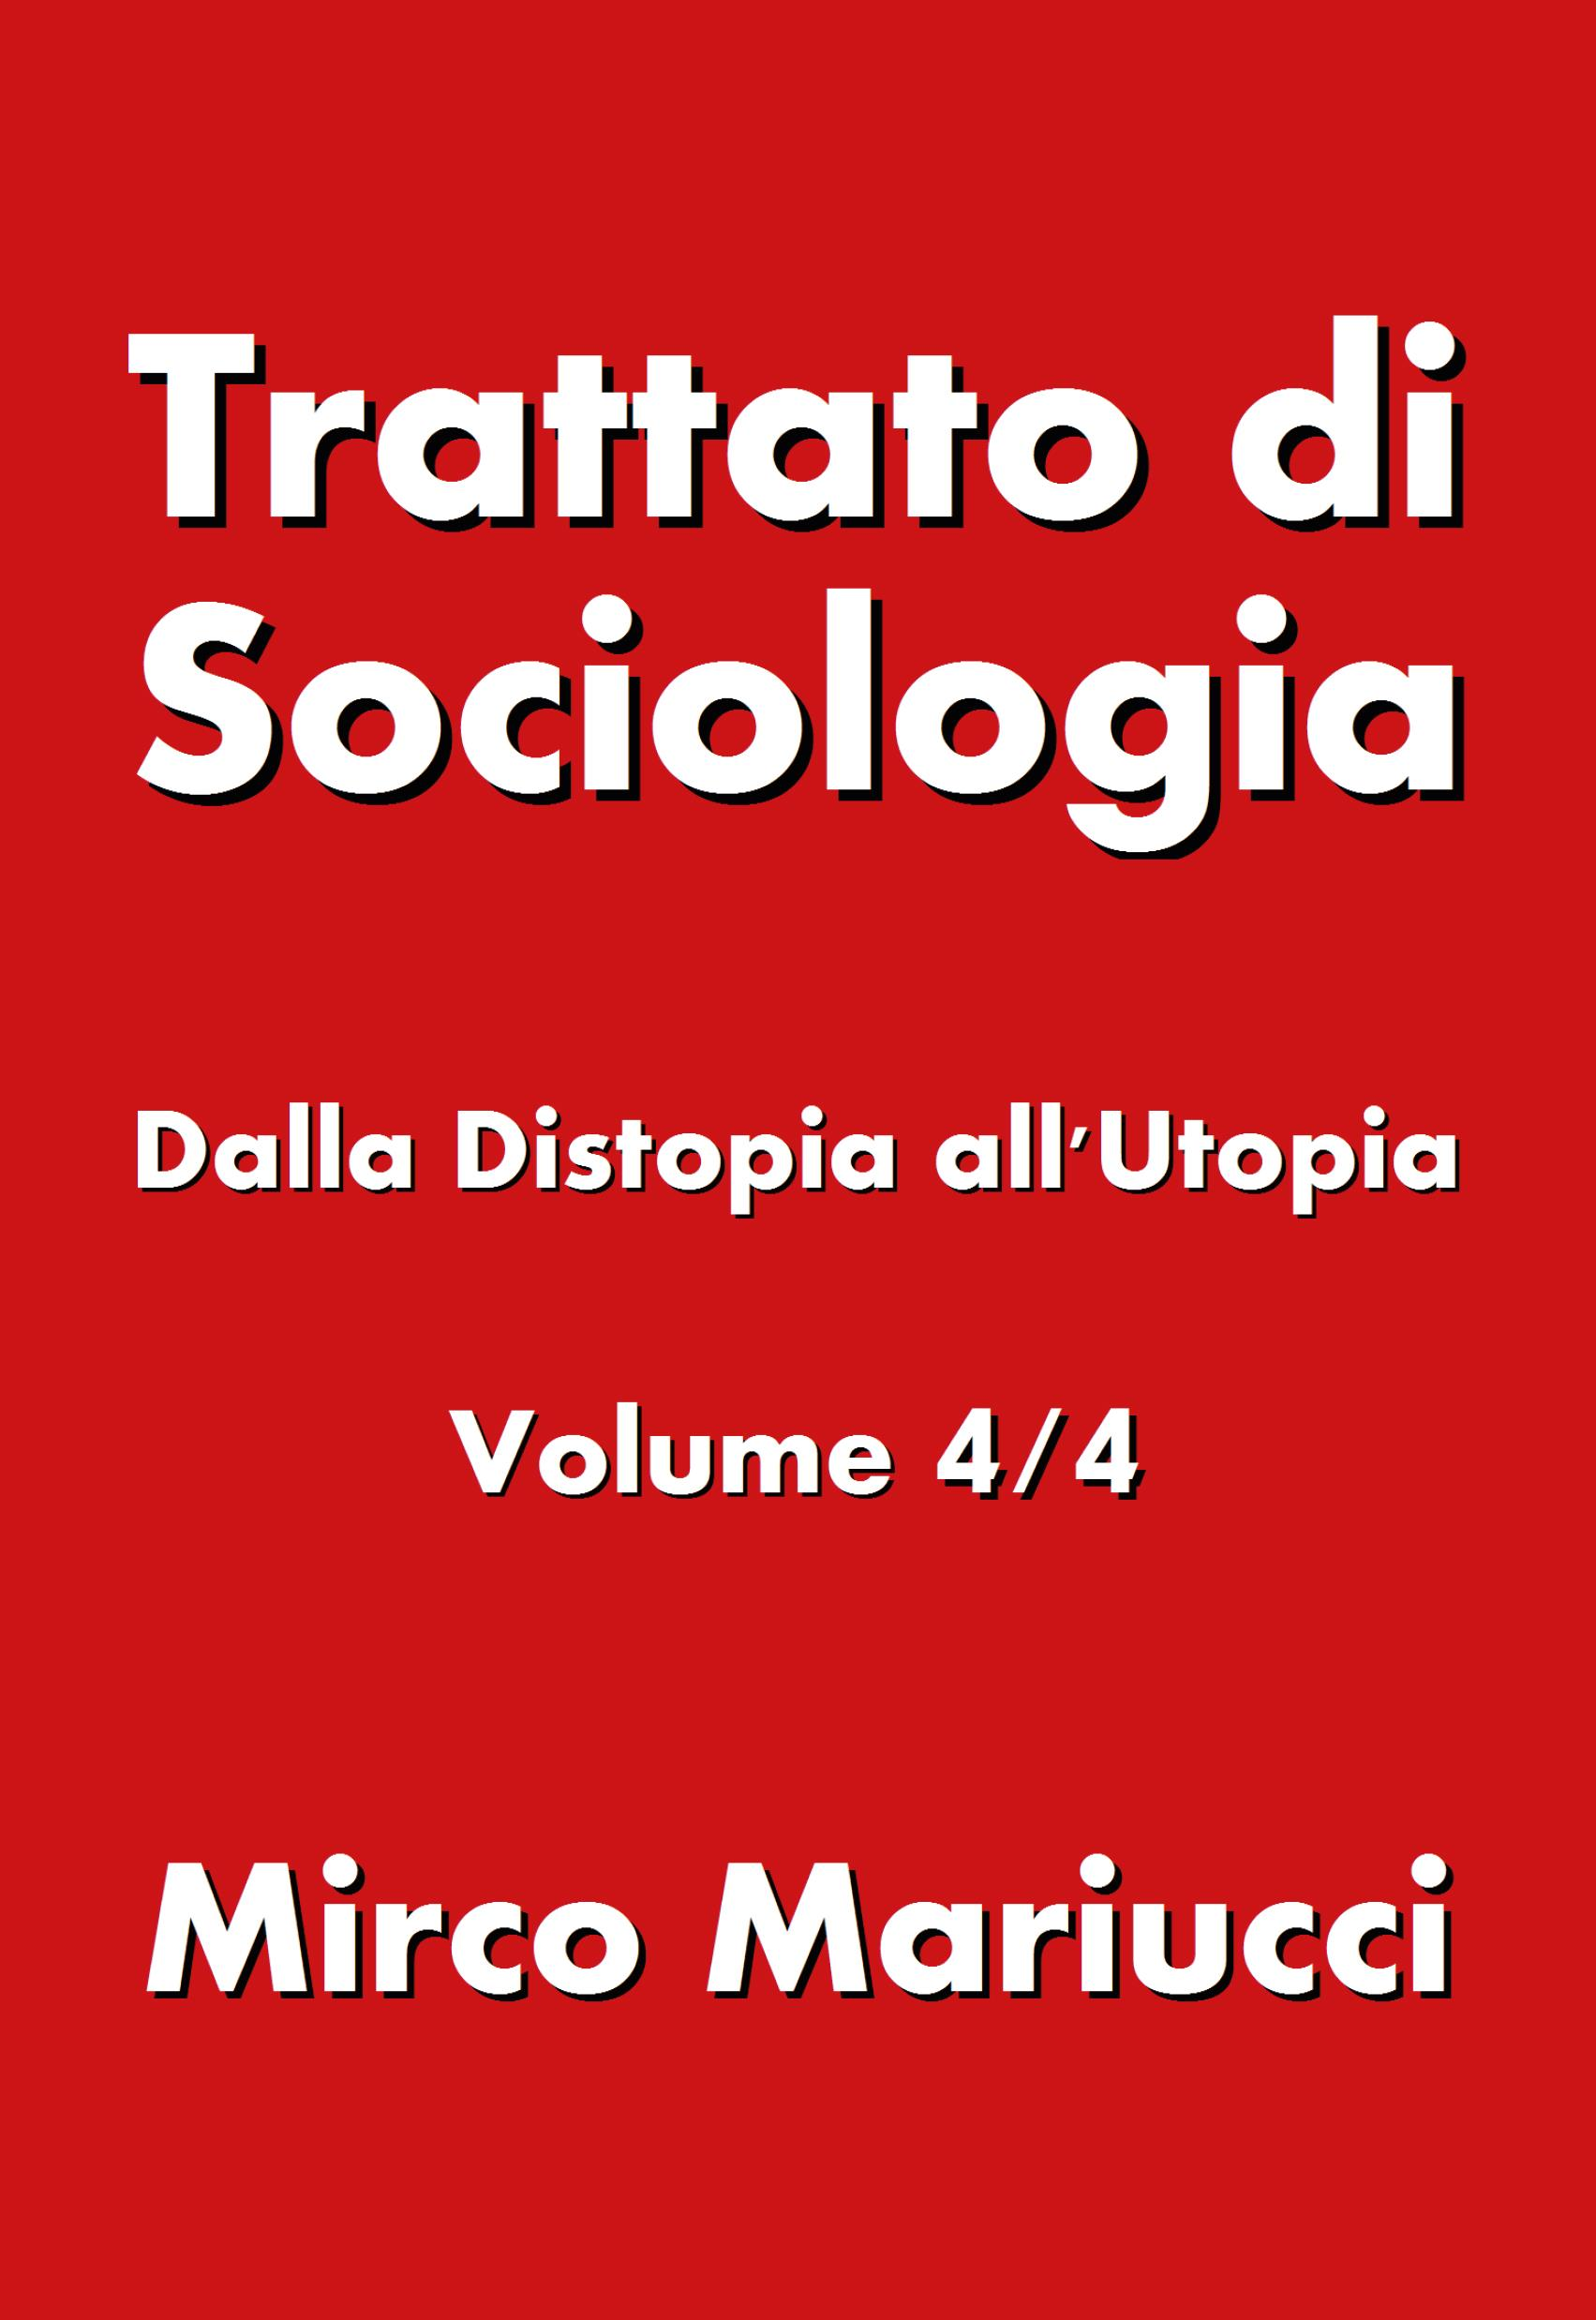 Trattato di Sociologia: dalla Distopia all'Utopia. Volume 4/4